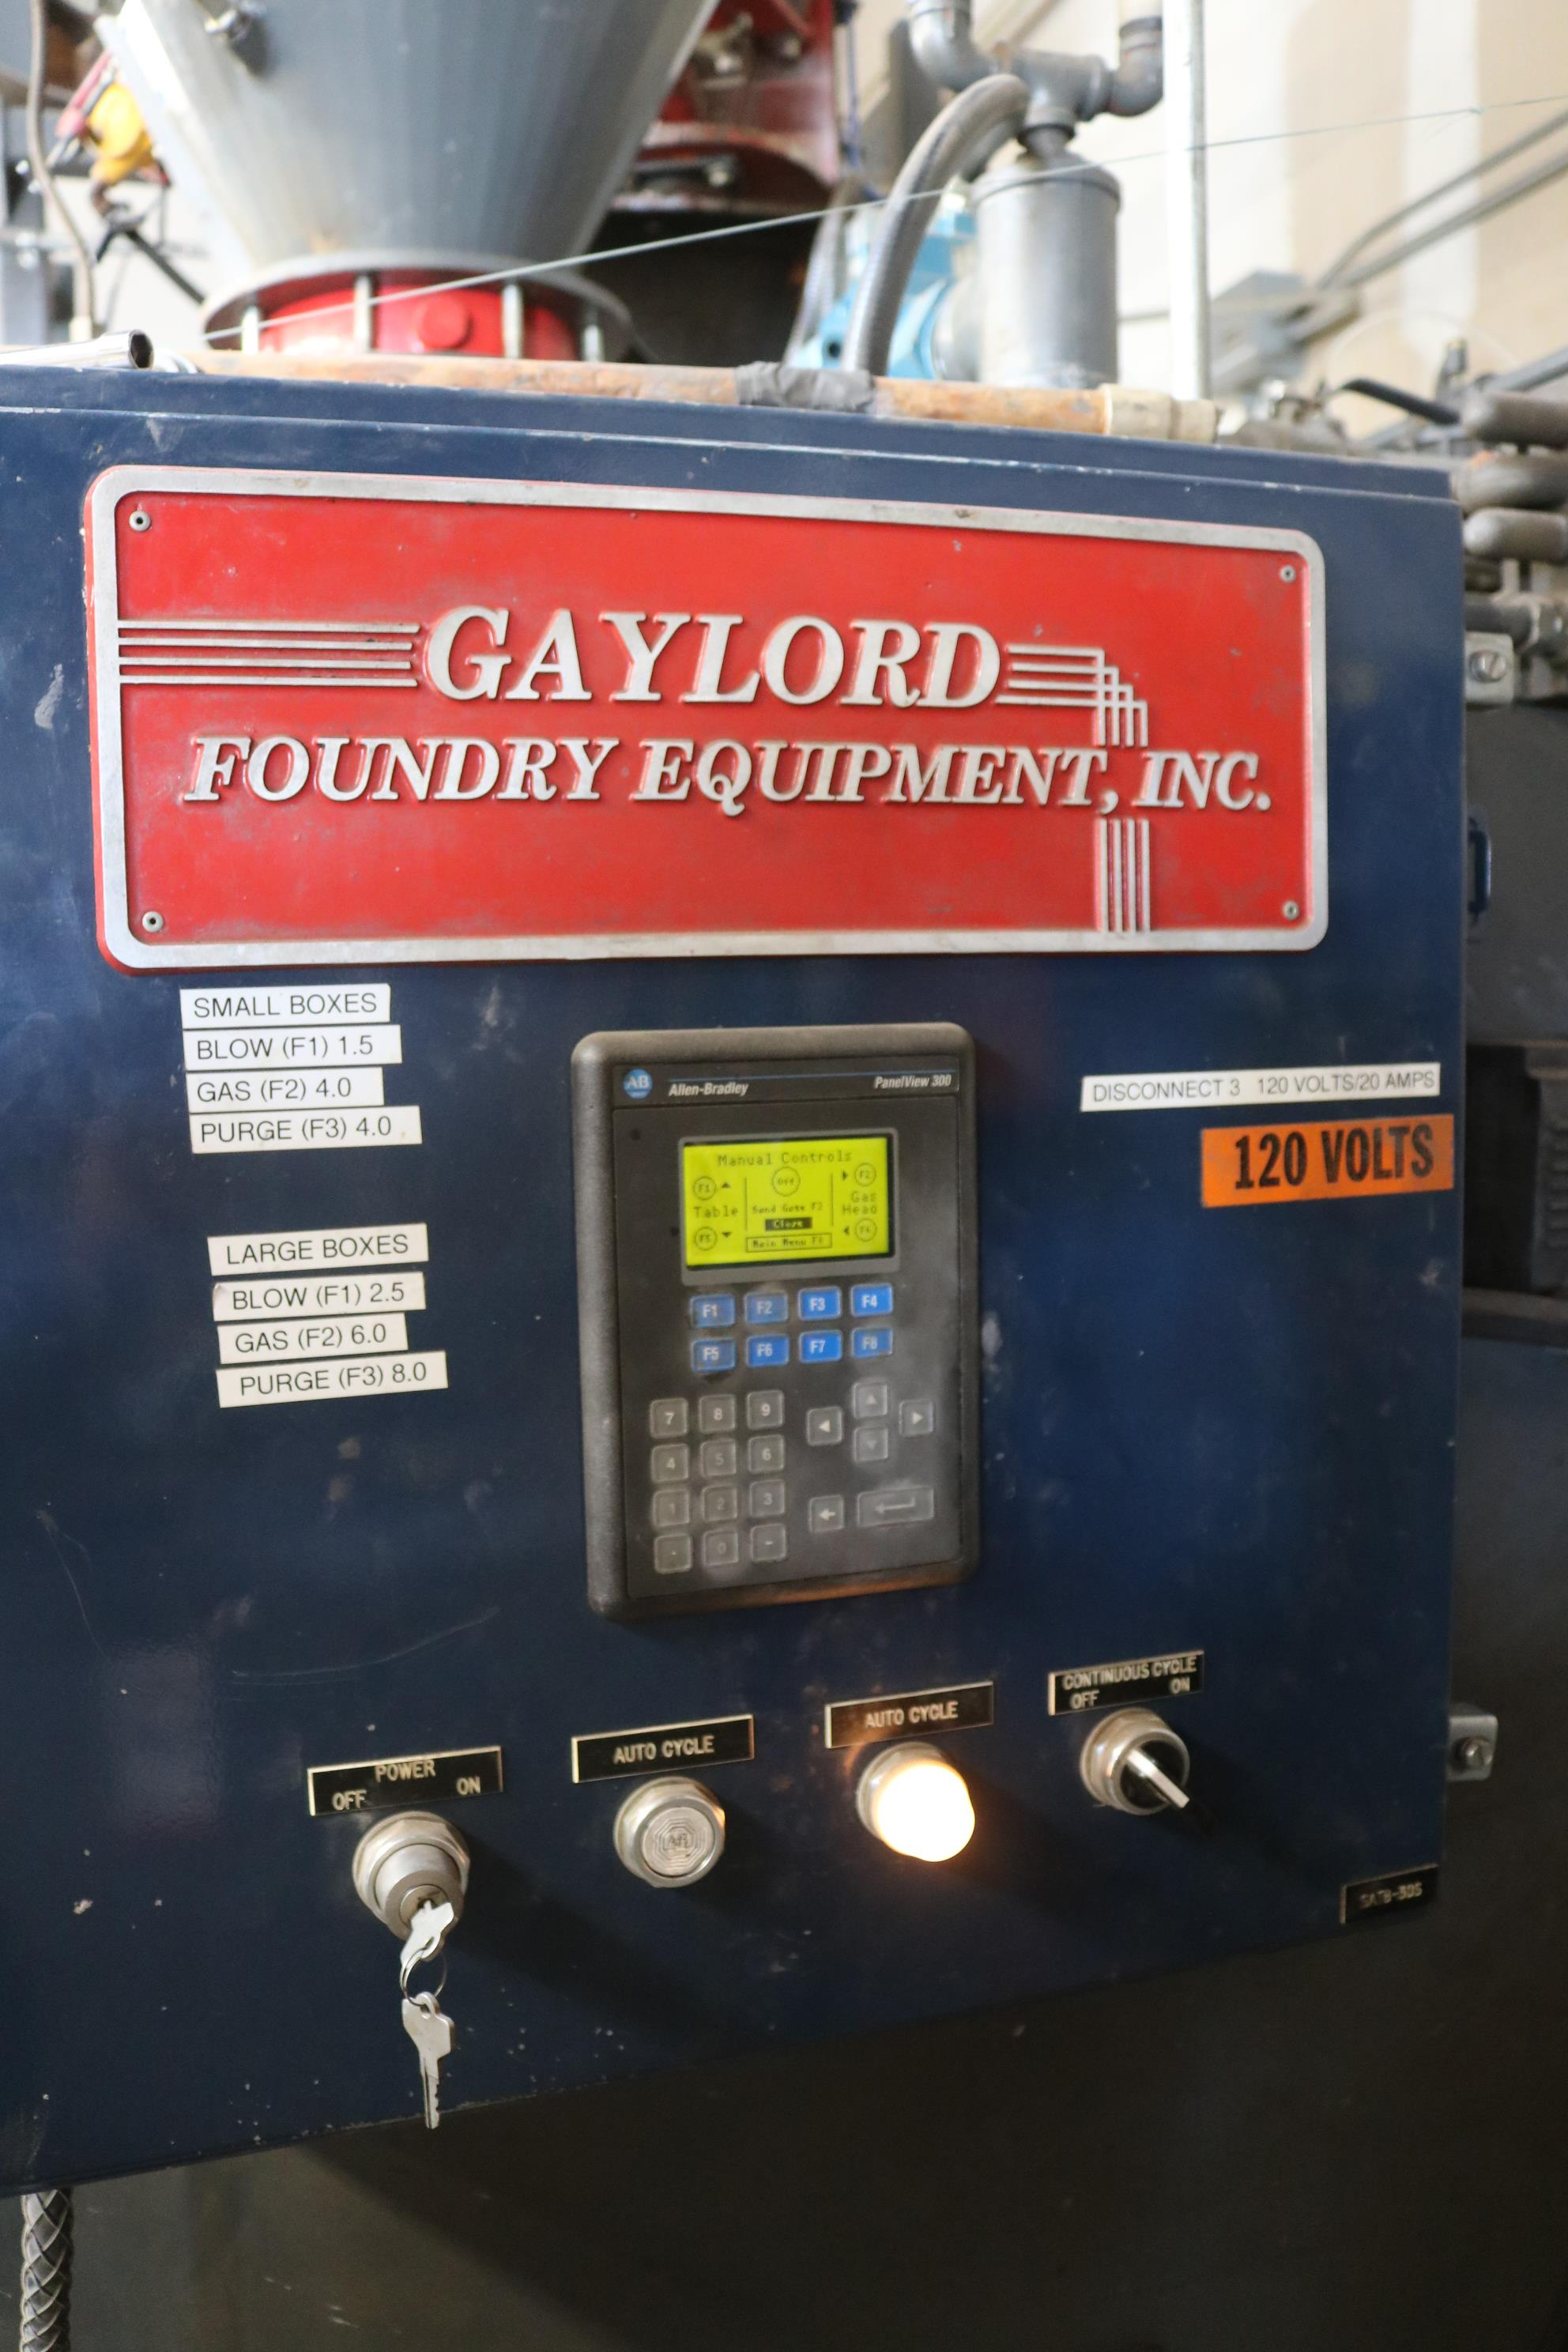 Lot 54 - 2001 GAYLORD CORE MACHINE SYSTEM, TINKER OMEGA TOM 125 CONTINUOUS MIXER, PUMPS AND FEED BUCKET